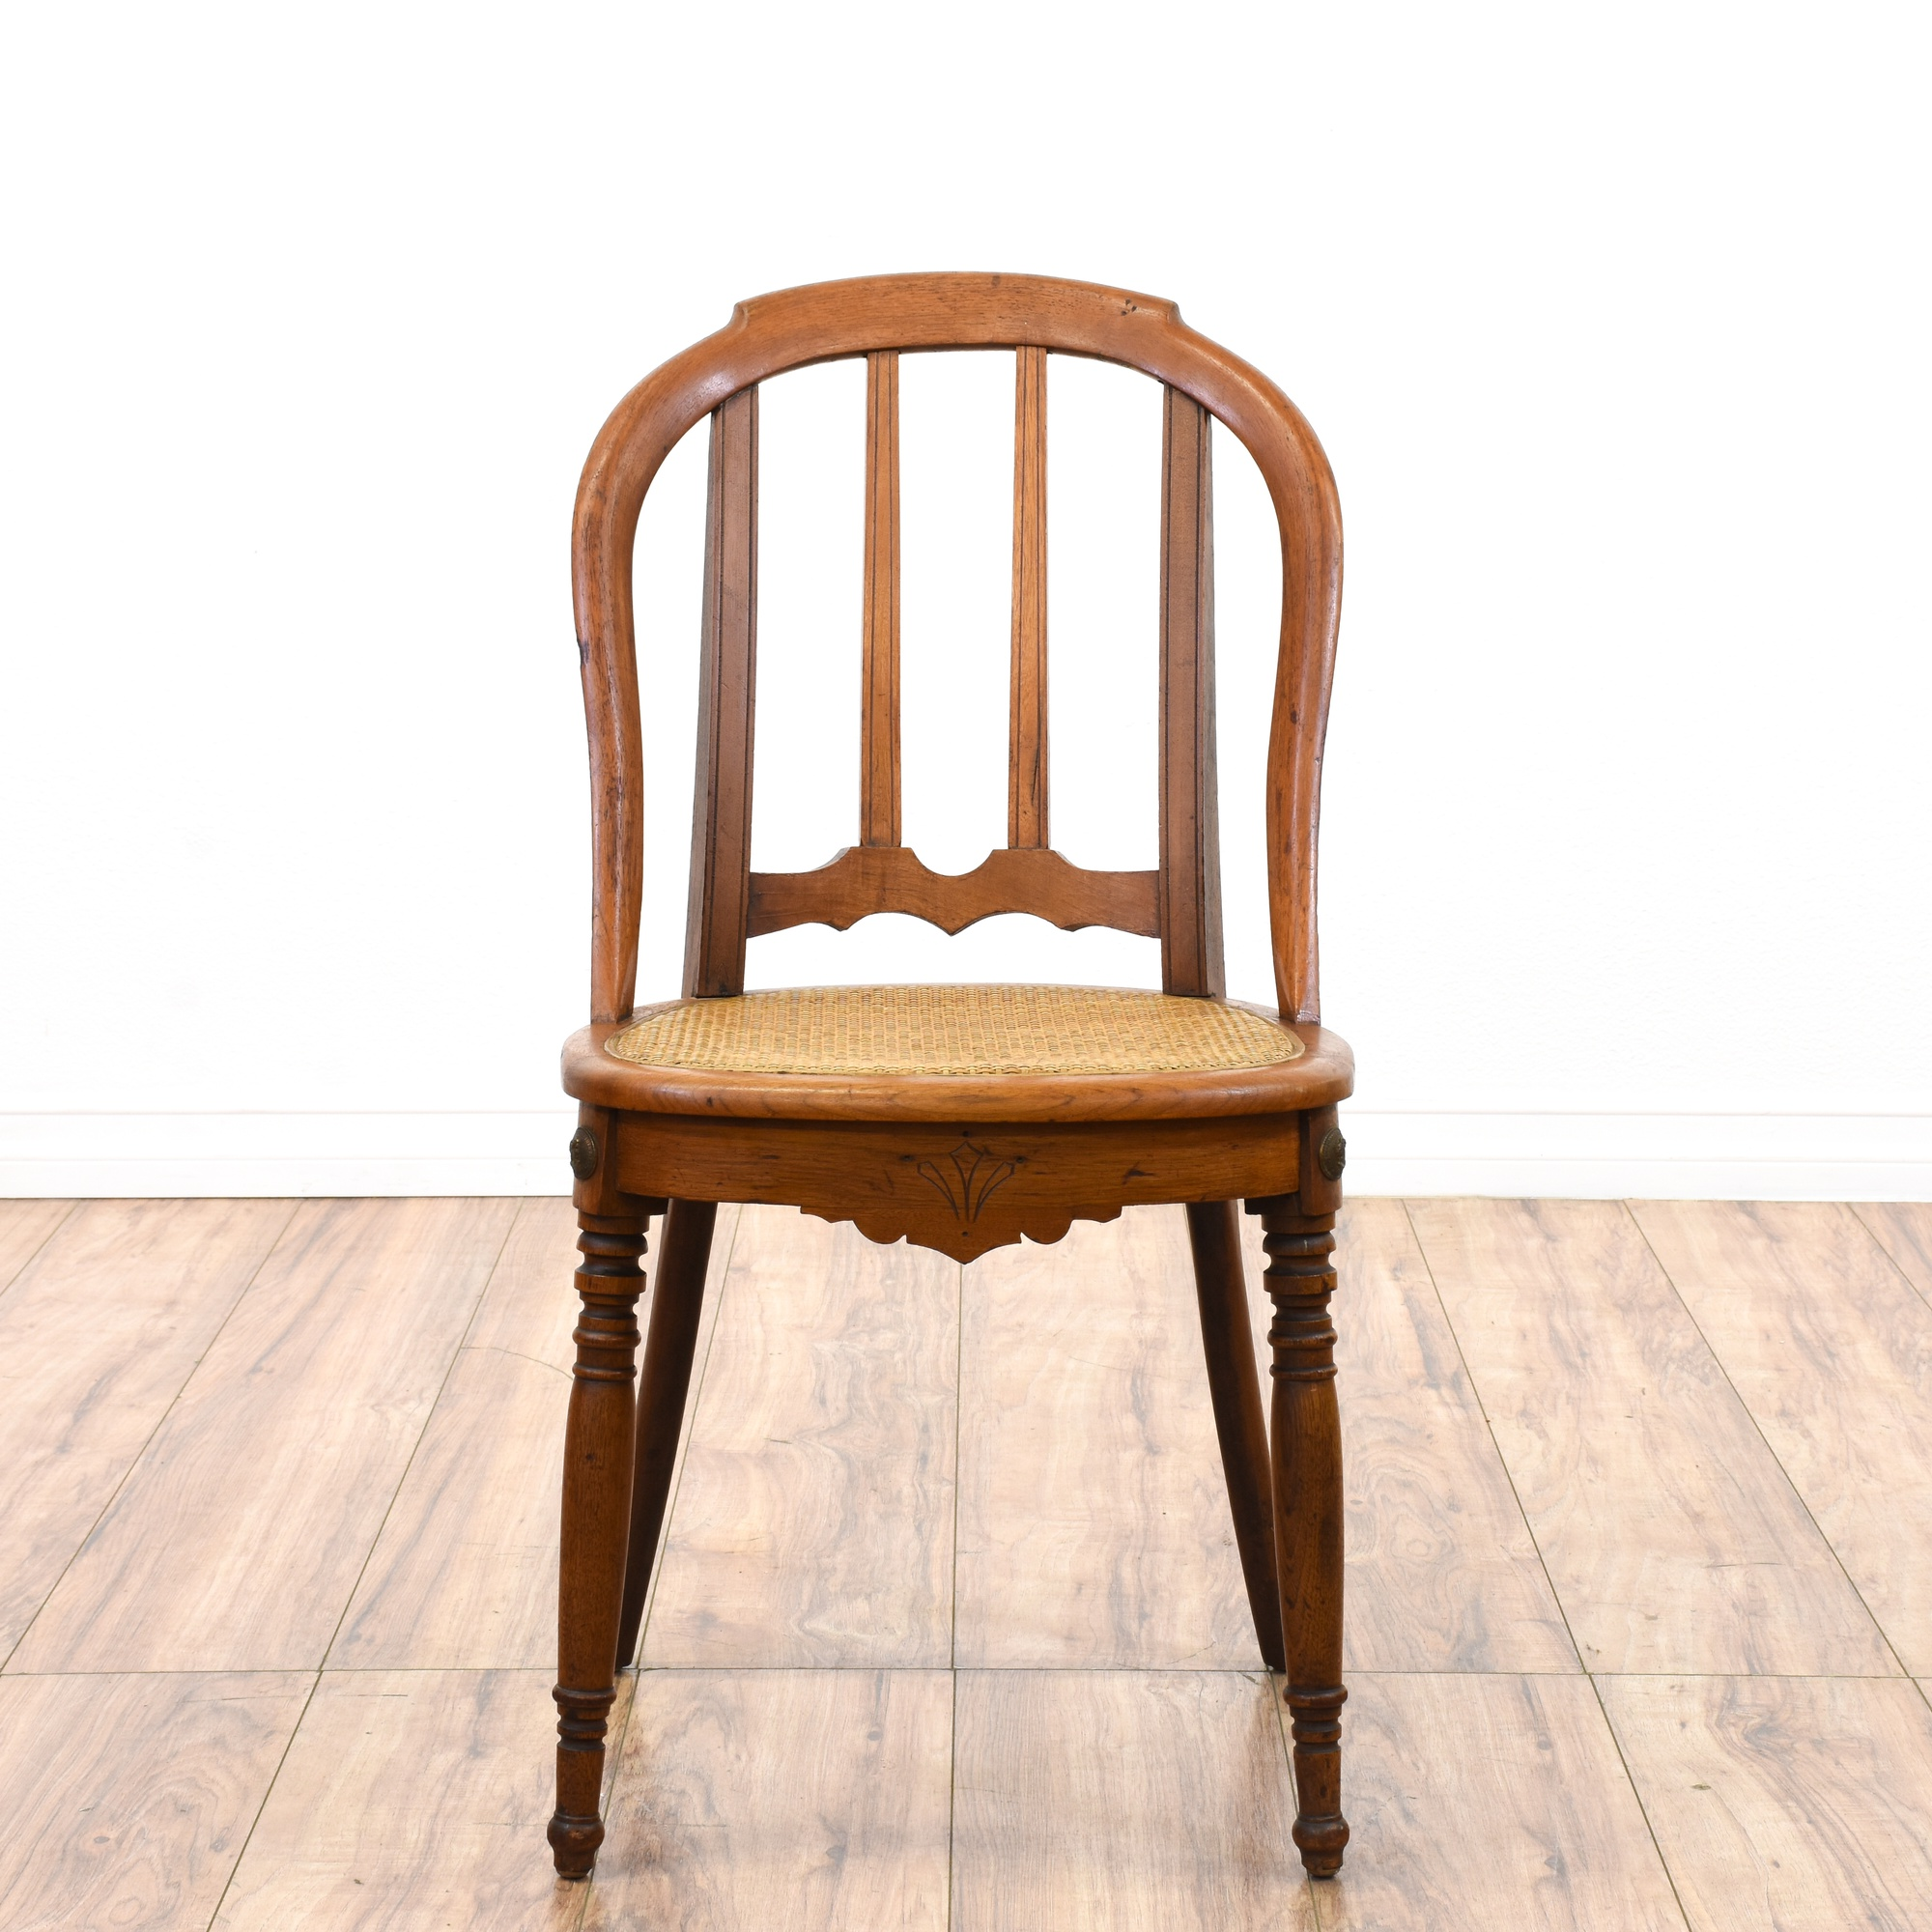 Early american antique woven seat pine chair